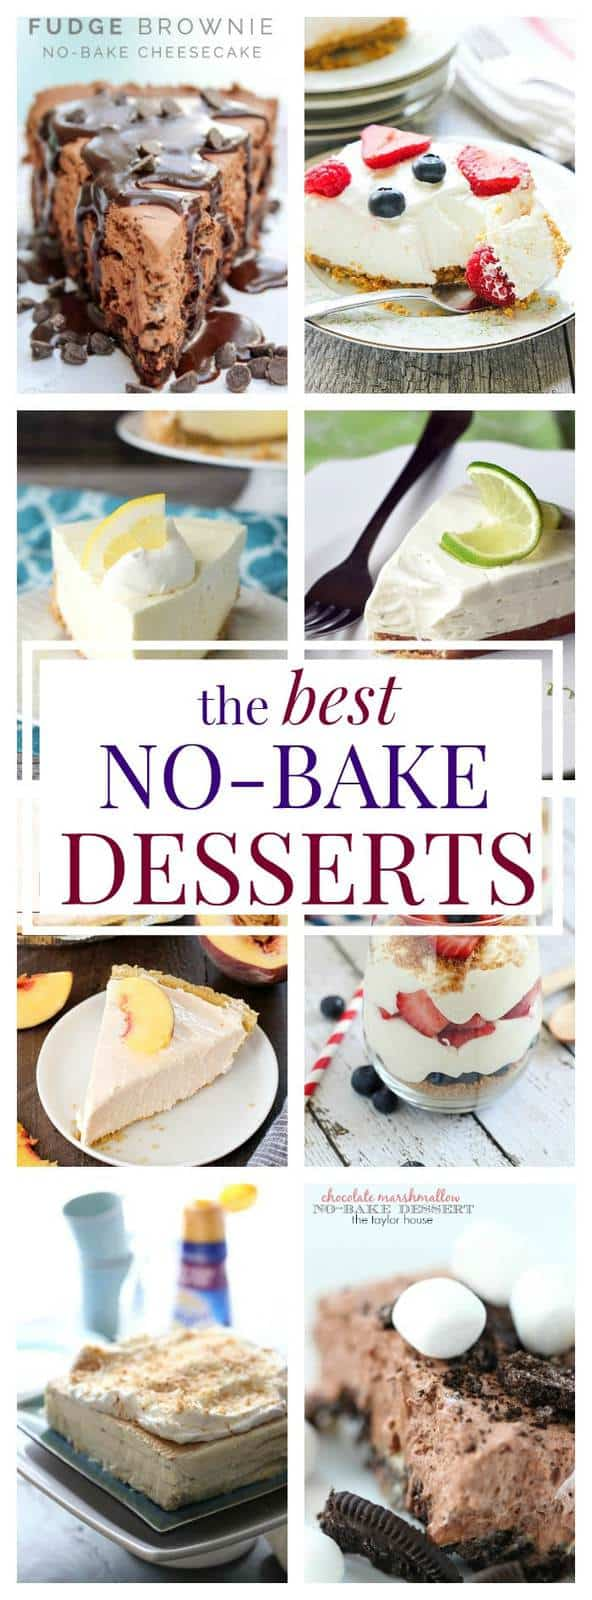 The Best No-Bake Desserts - delicious no-bake dessert recipes to keep your kitchen cool while you satisfy your sweet tooth.